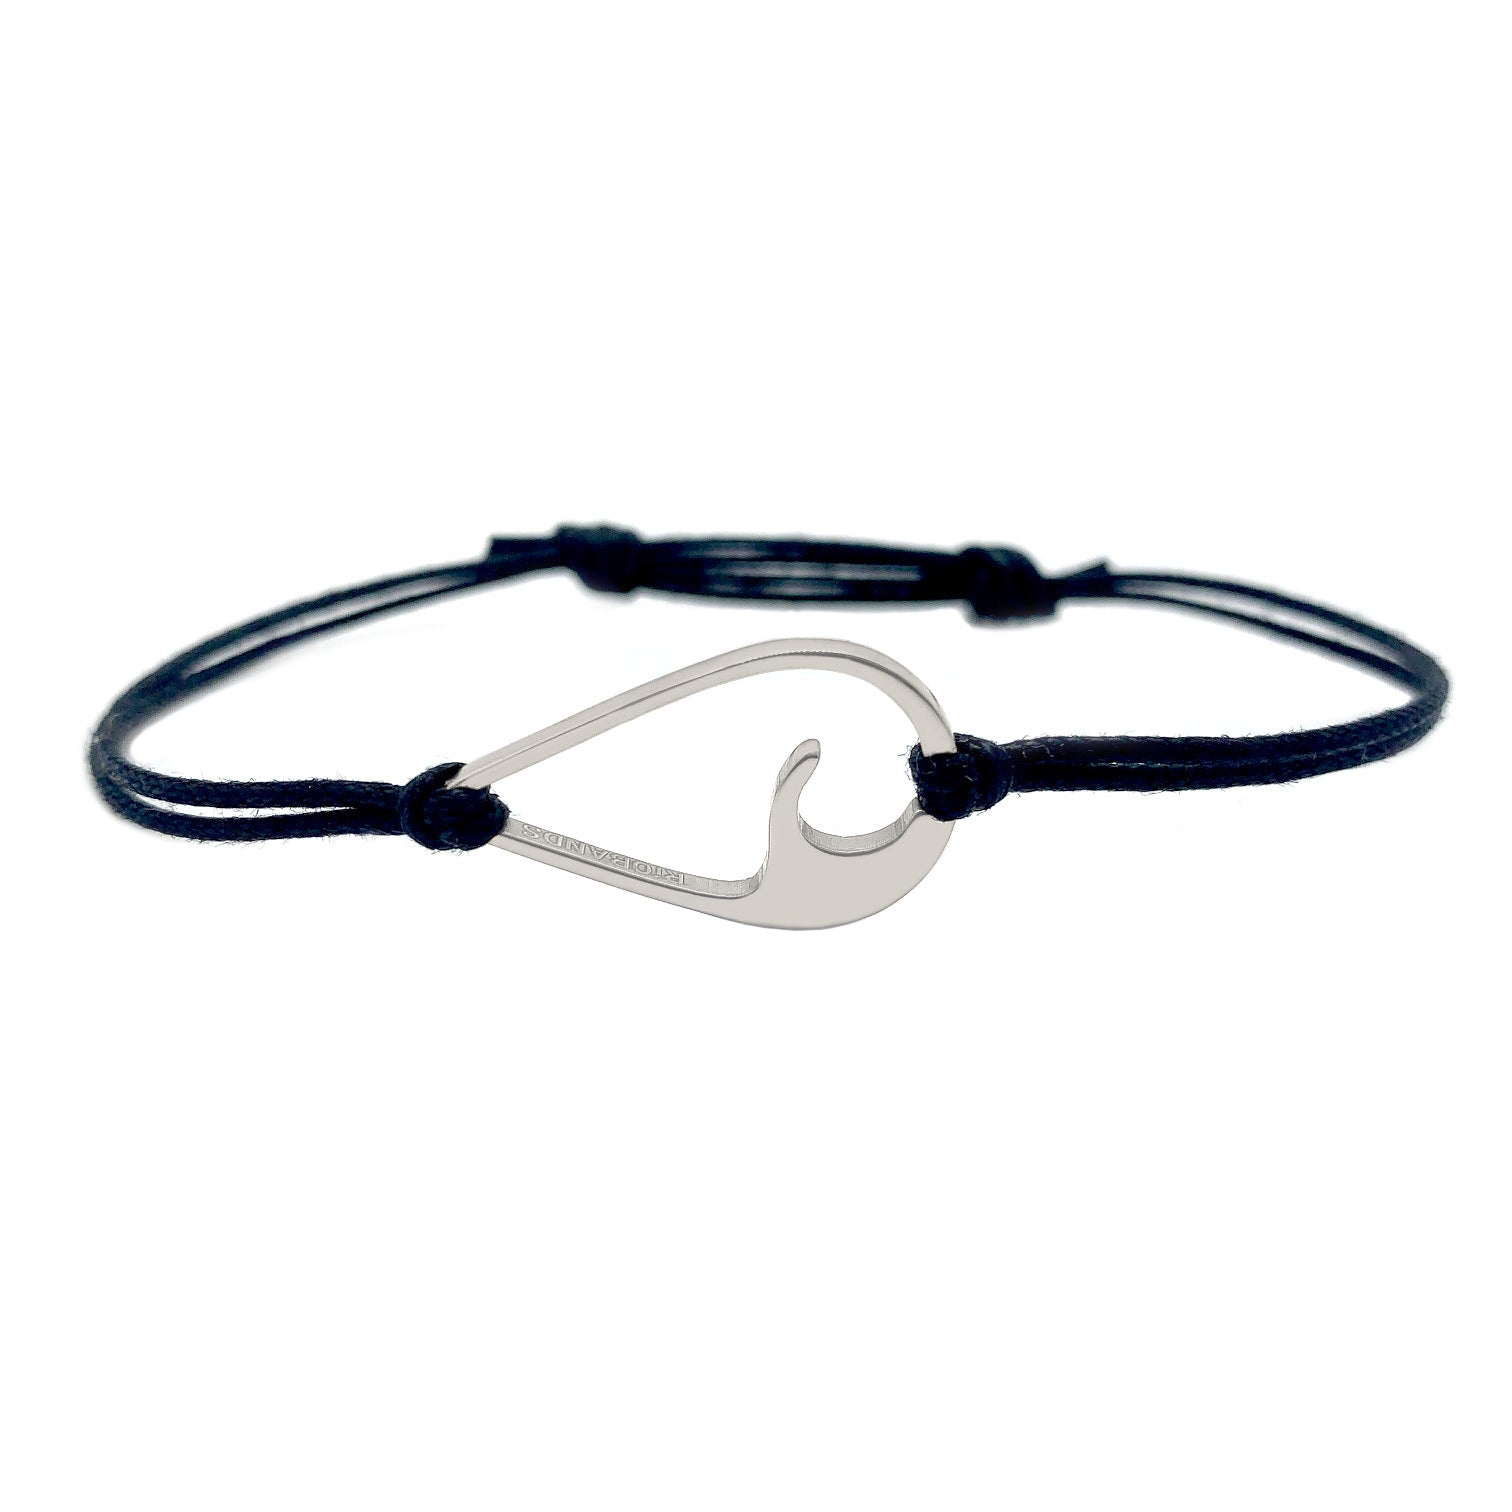 wavedrop bracelet black ice silver